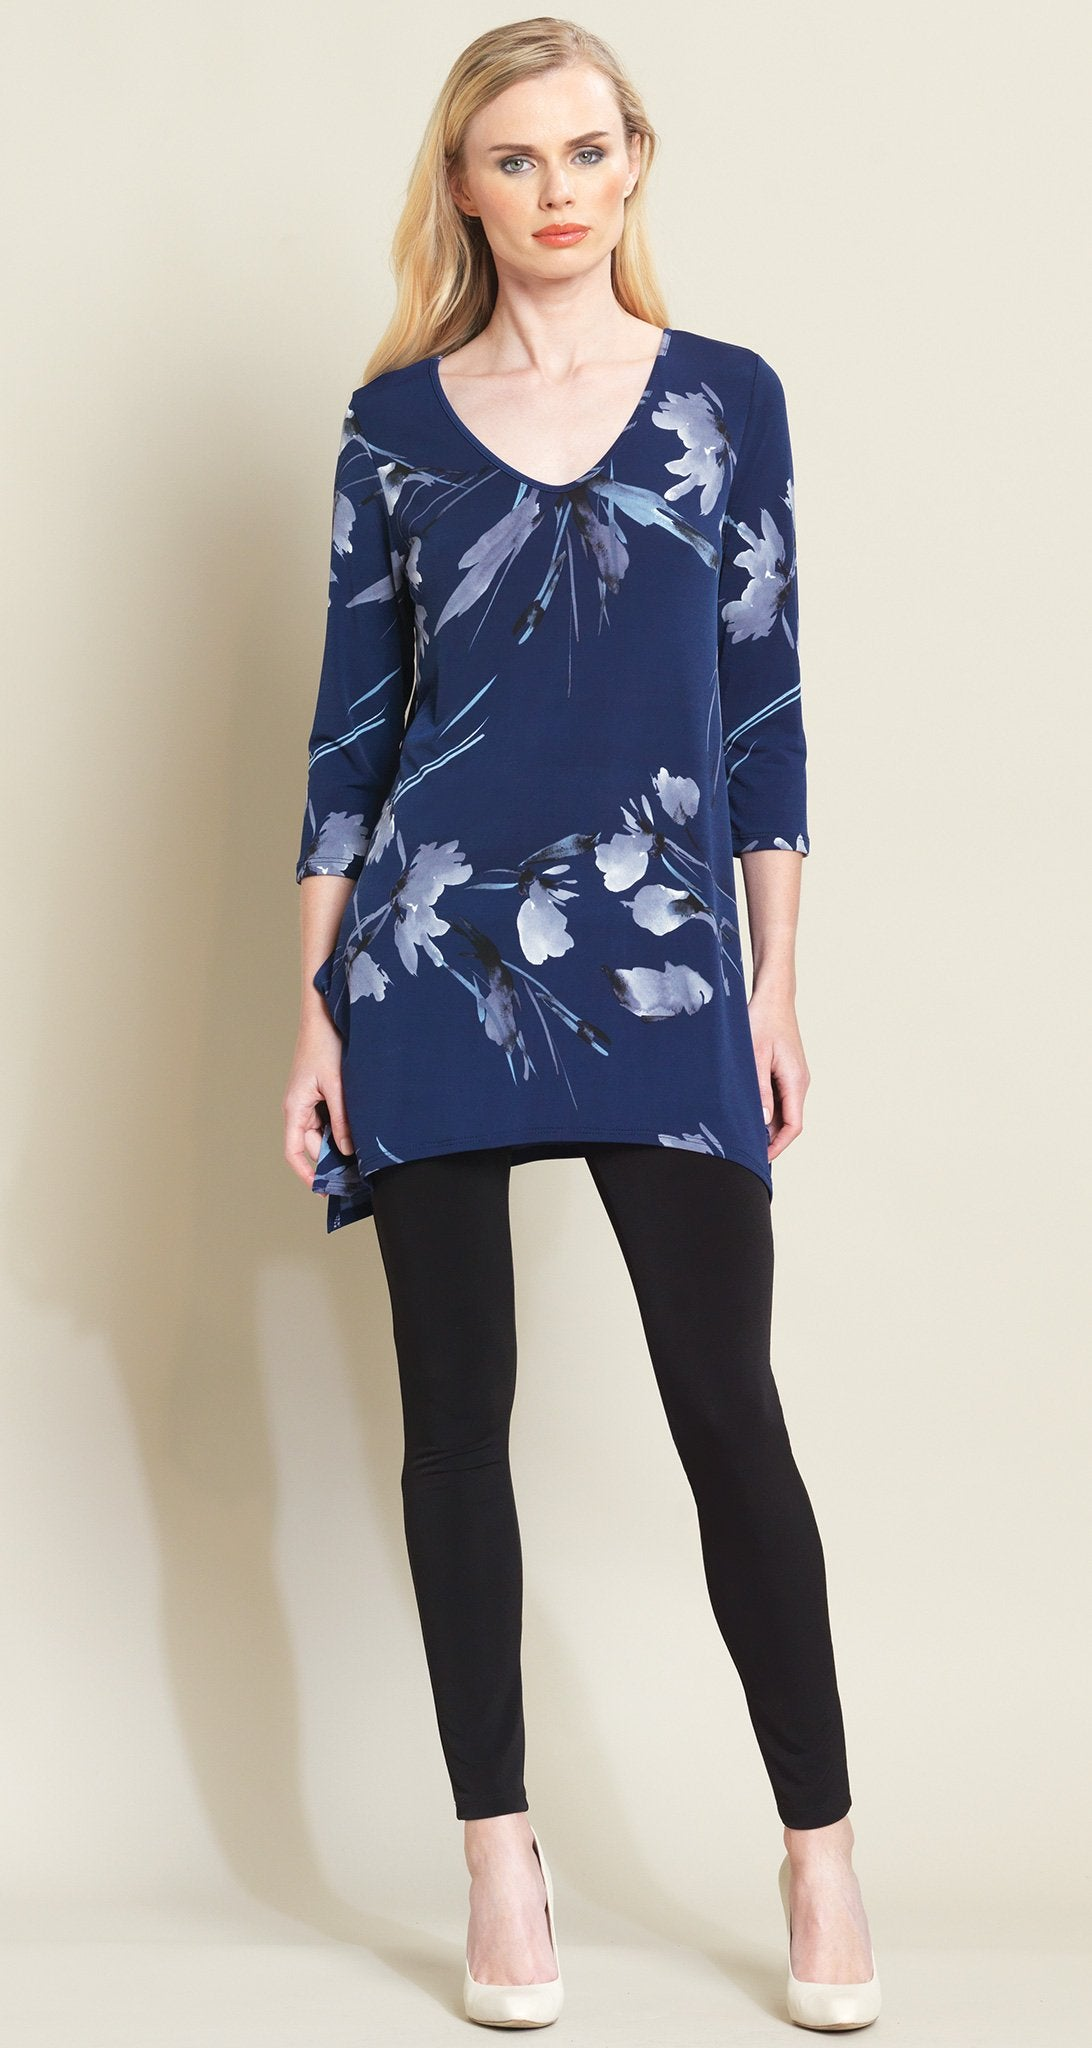 Floral Leaves Side Vent Tunic - Navy/Grey - Final Sale! - Clara Sunwoo